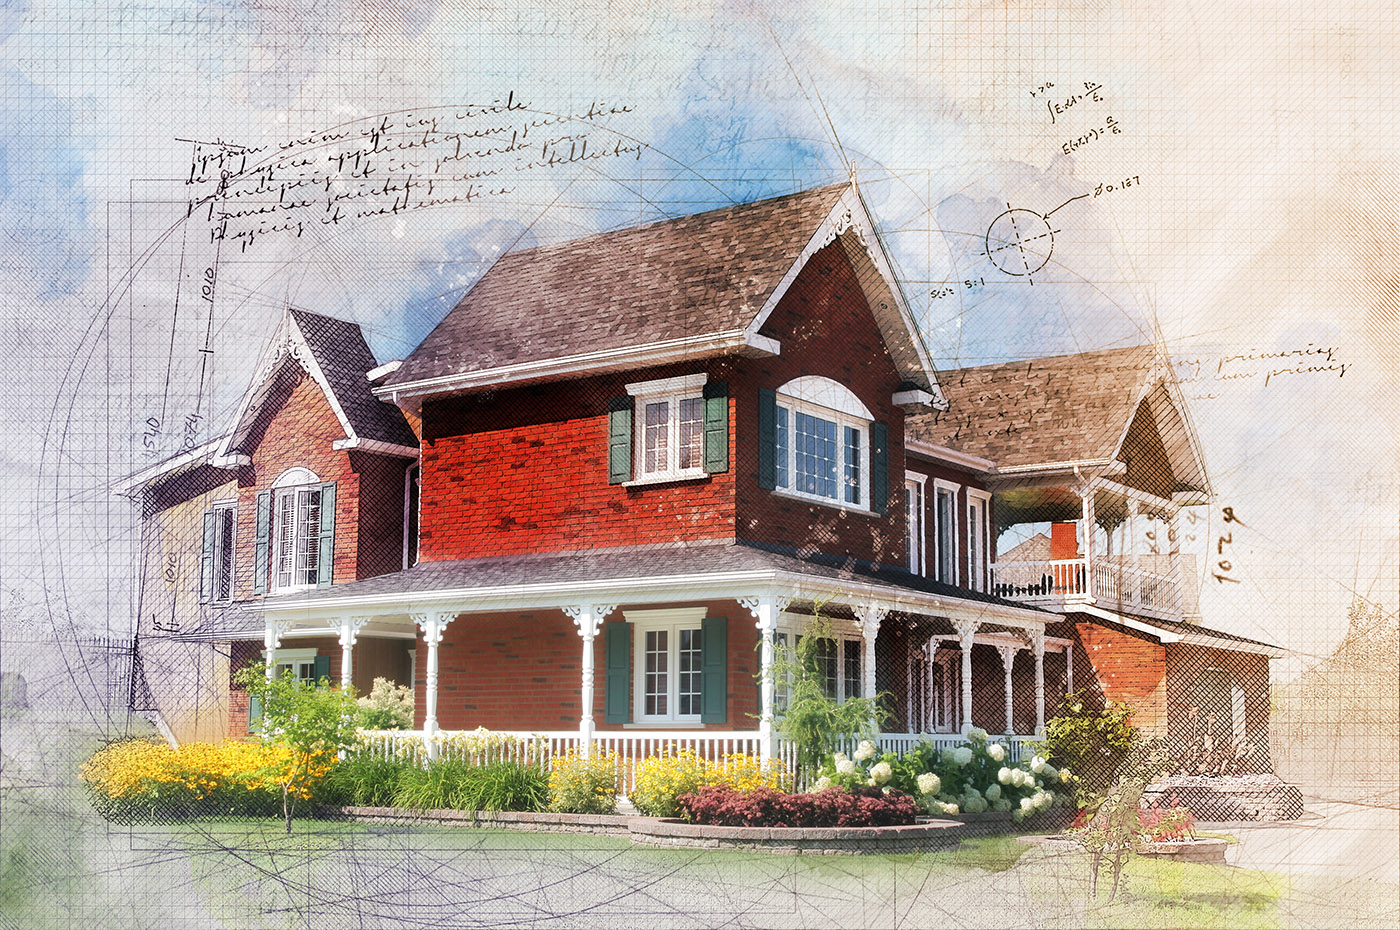 Beautiful Cottage Sketch Image - Royalty-Free Stock Imagery